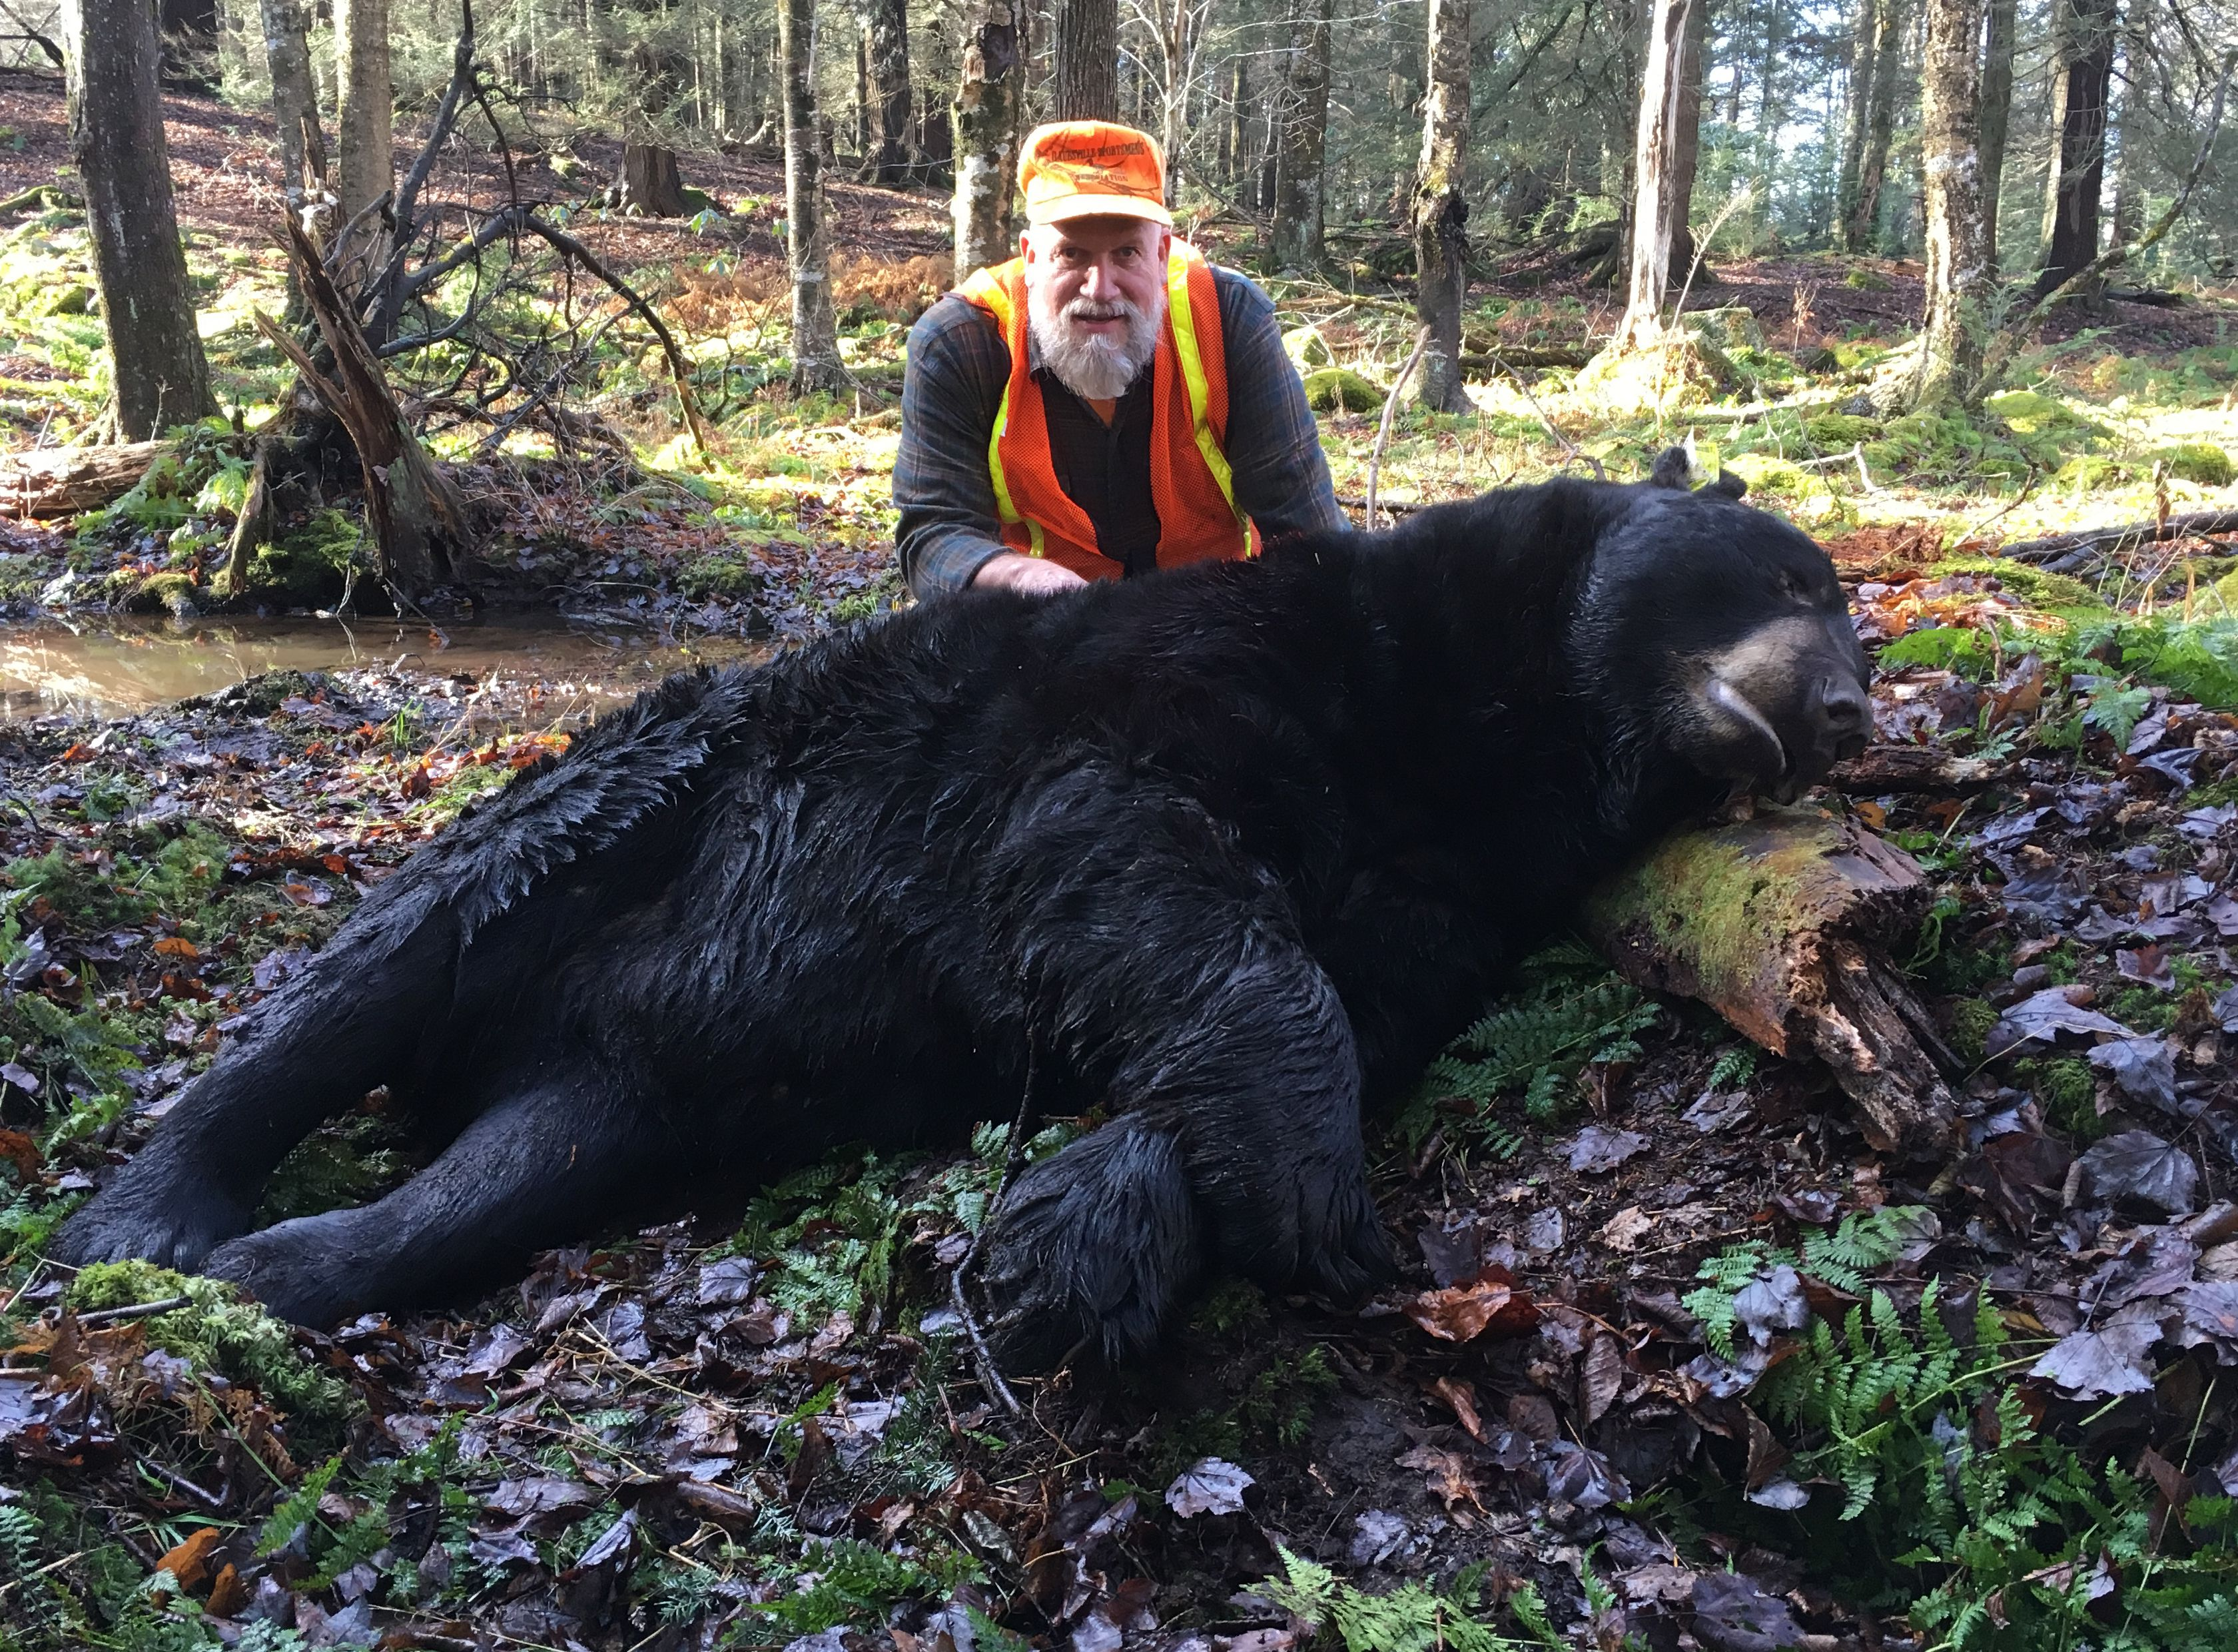 743 Pound Bear Bagged By Nazareth Area Man Is 3rd Biggest This Season In Pa Lehighvalleylive Com The operating system, lock express seamlessly integrates the. lehigh valley live